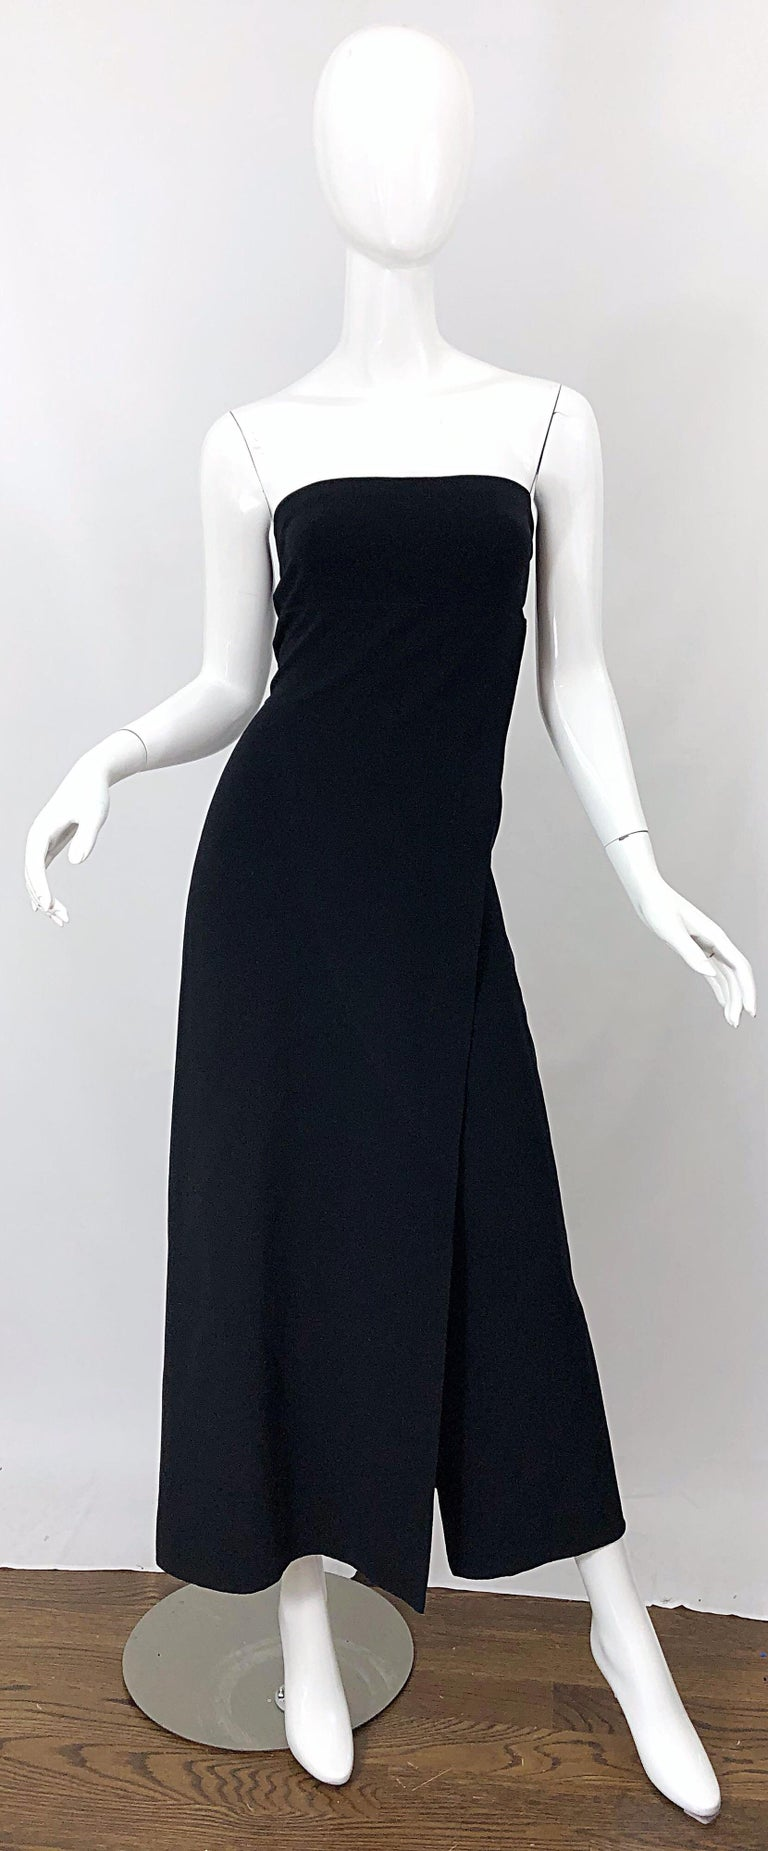 Elegant 1990s DONNA KARAN NEW YORK black strapless vintage wool gown! Features a soft wool blend (96%), with just the right amount of spandex (4%) to comfortably stretch to fit. The criss-cross slit at the center hem almost gives off the illusion of